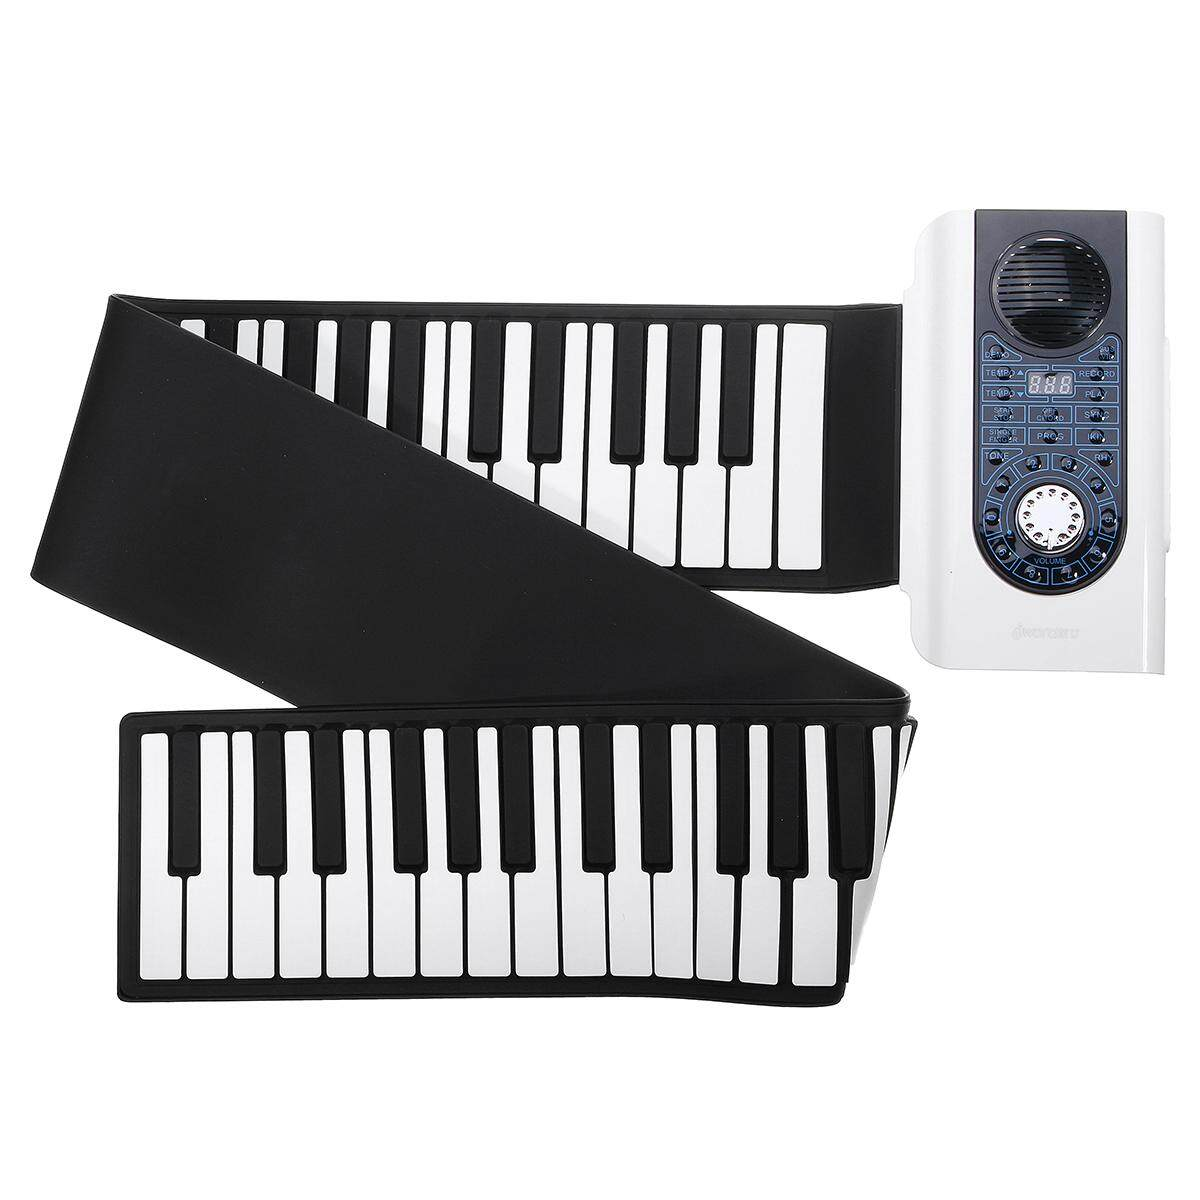 iWord 88 Key Professional Roll Up Piano Portable Travel With MIDI Keyboard  White - intl